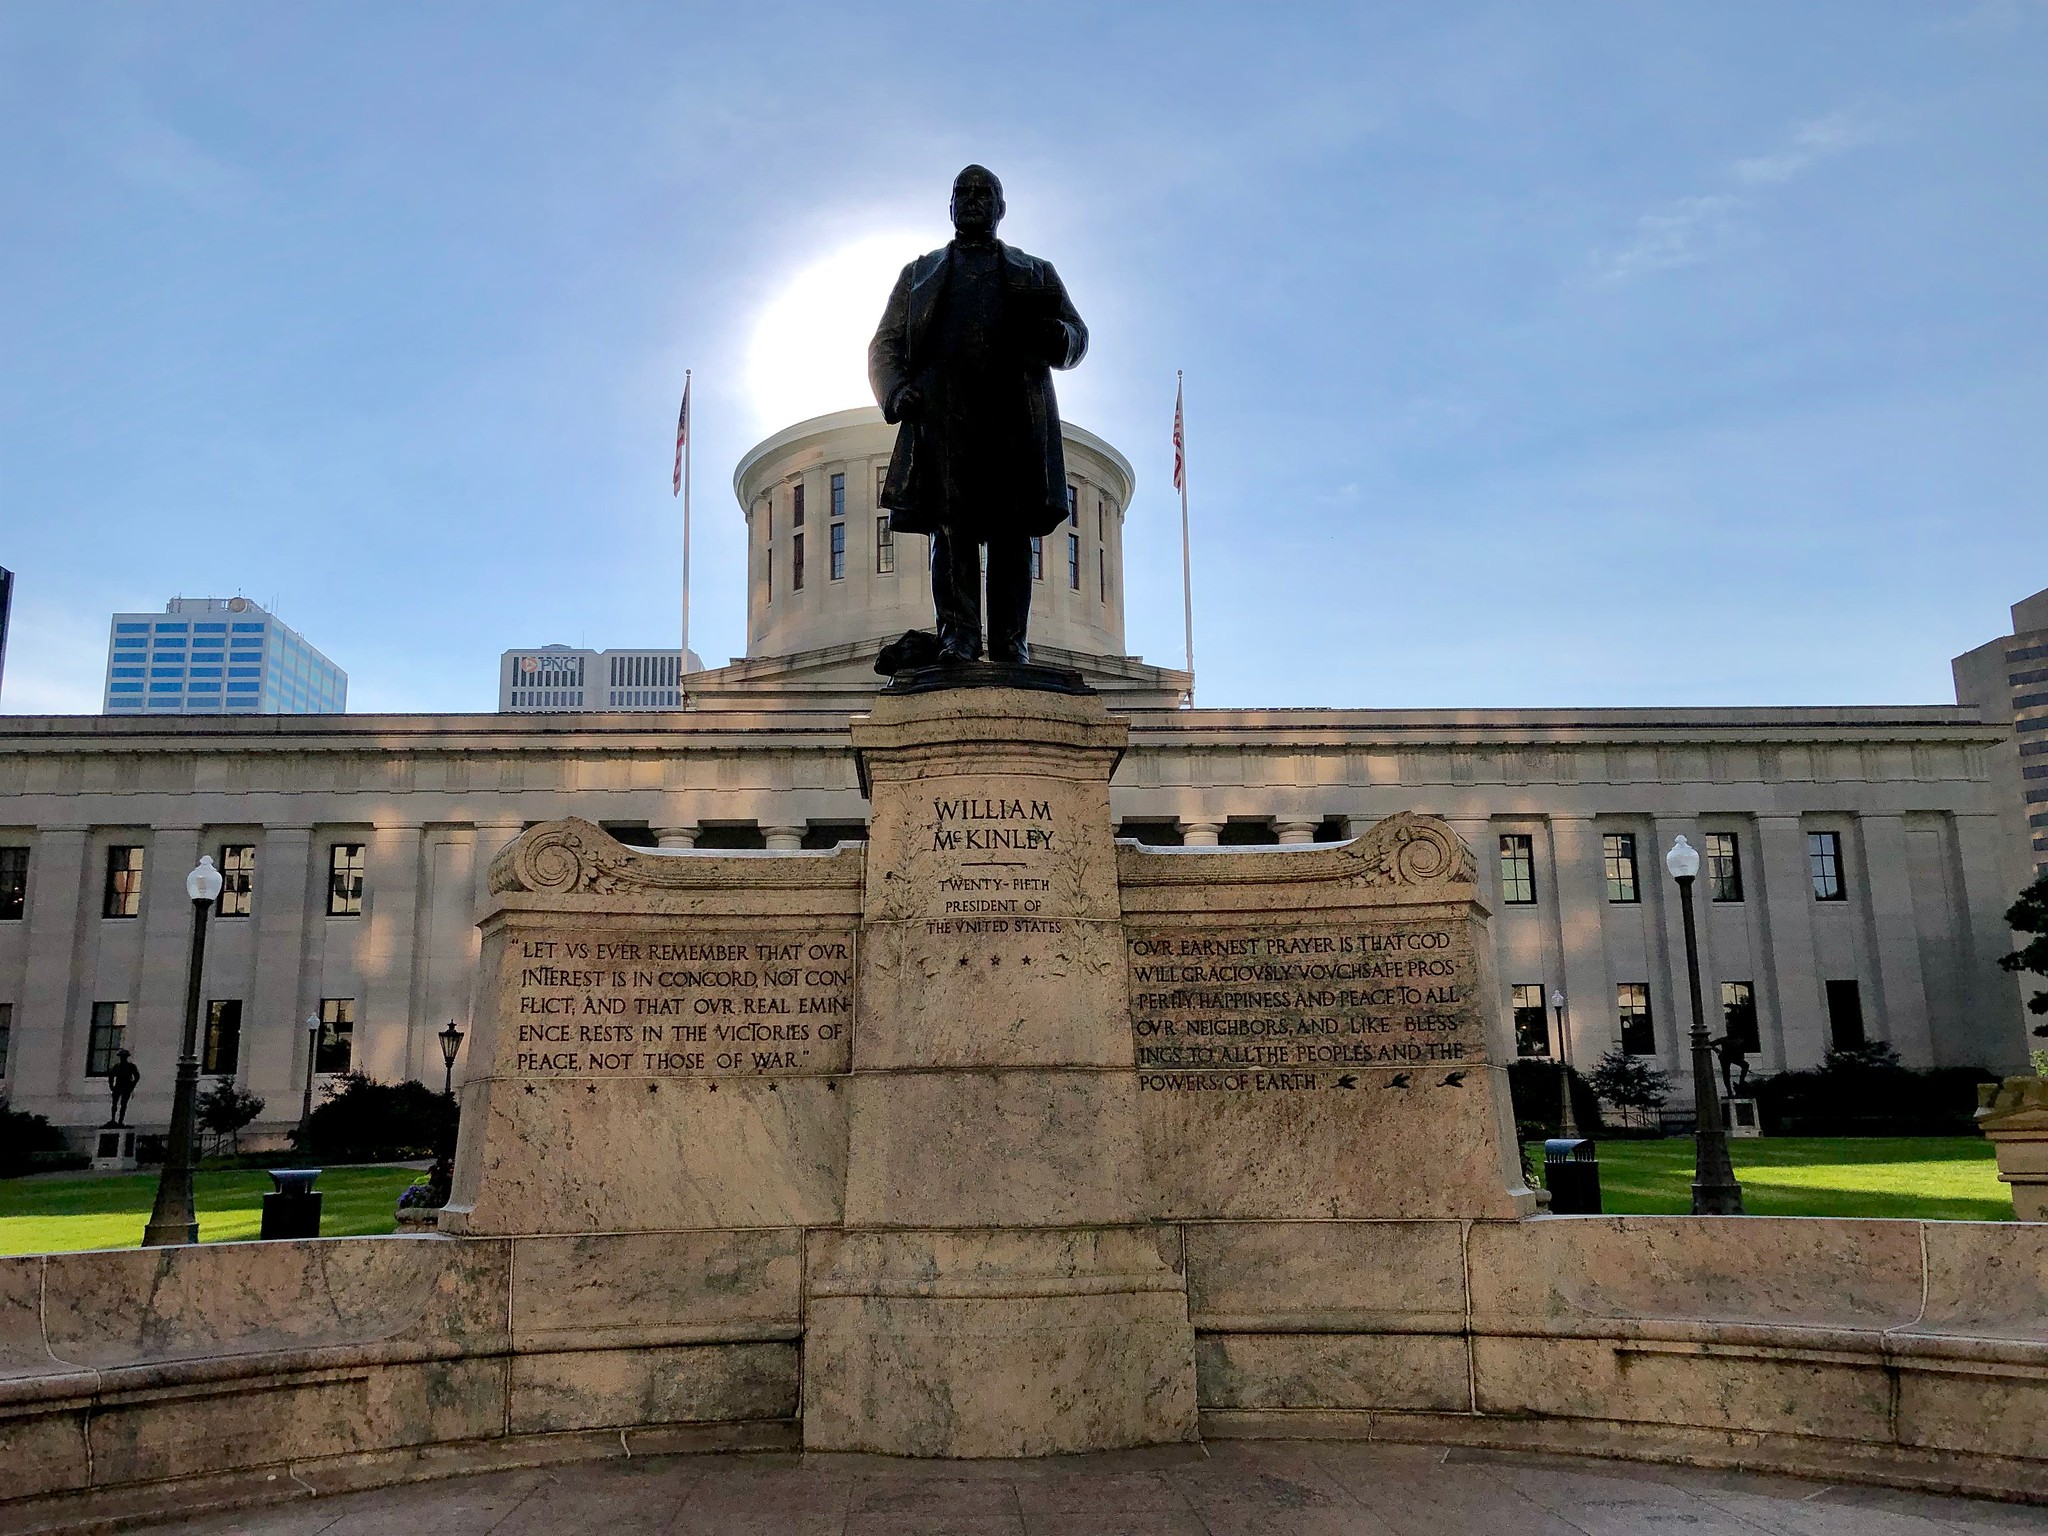 William McKinley Memorial, Columbus, OH